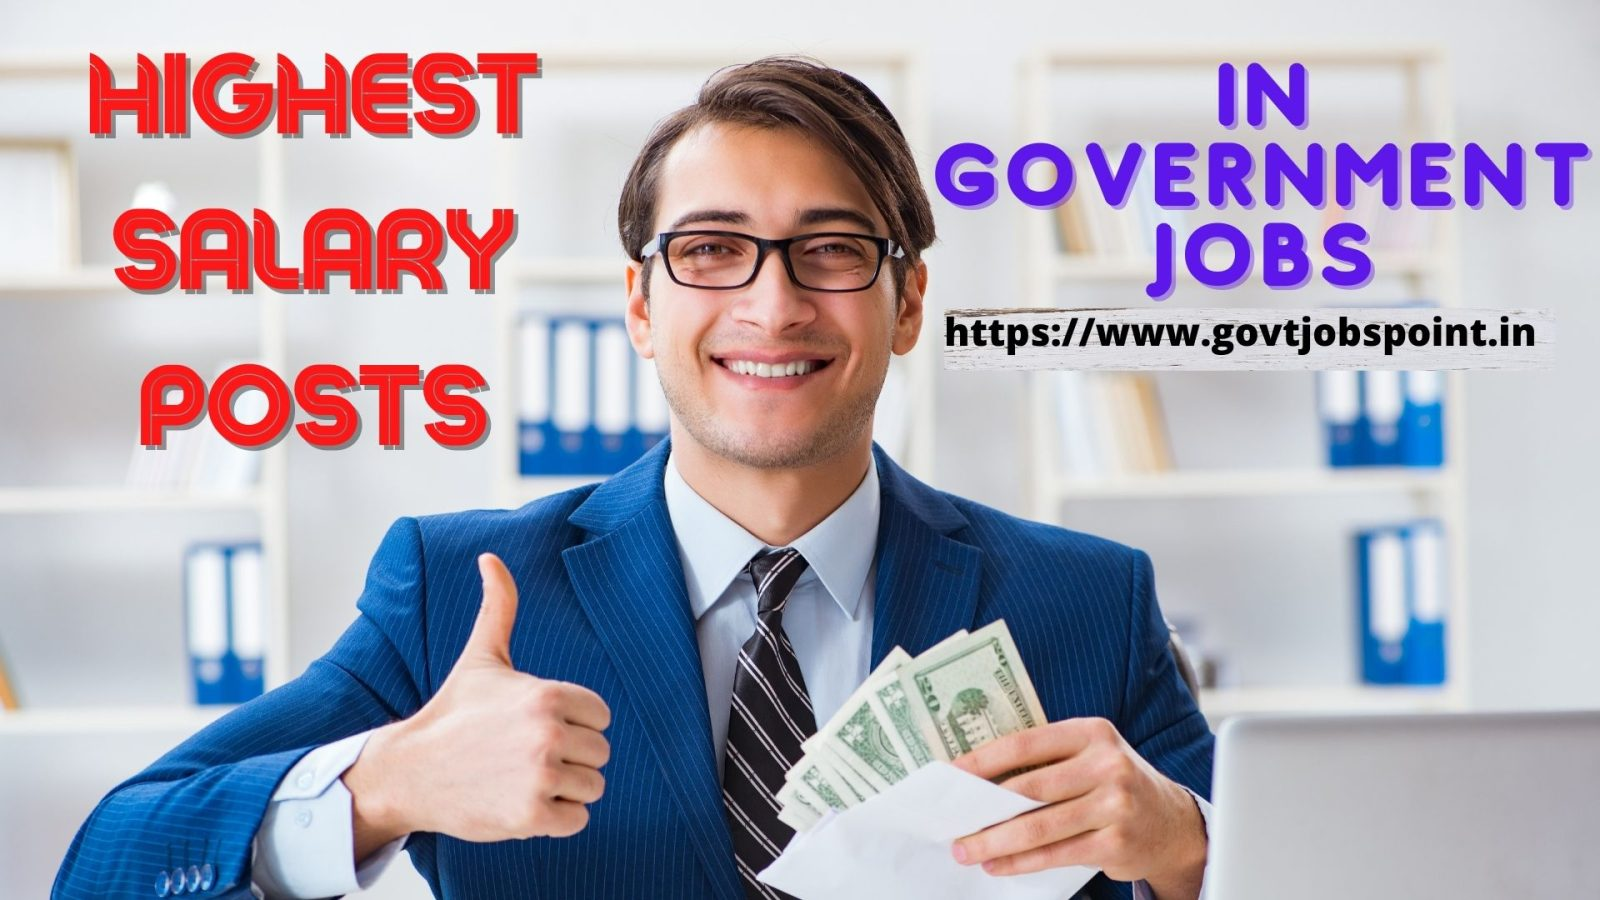 HIGHEST SALARY POSTS IN GOVERNMENT JOBS